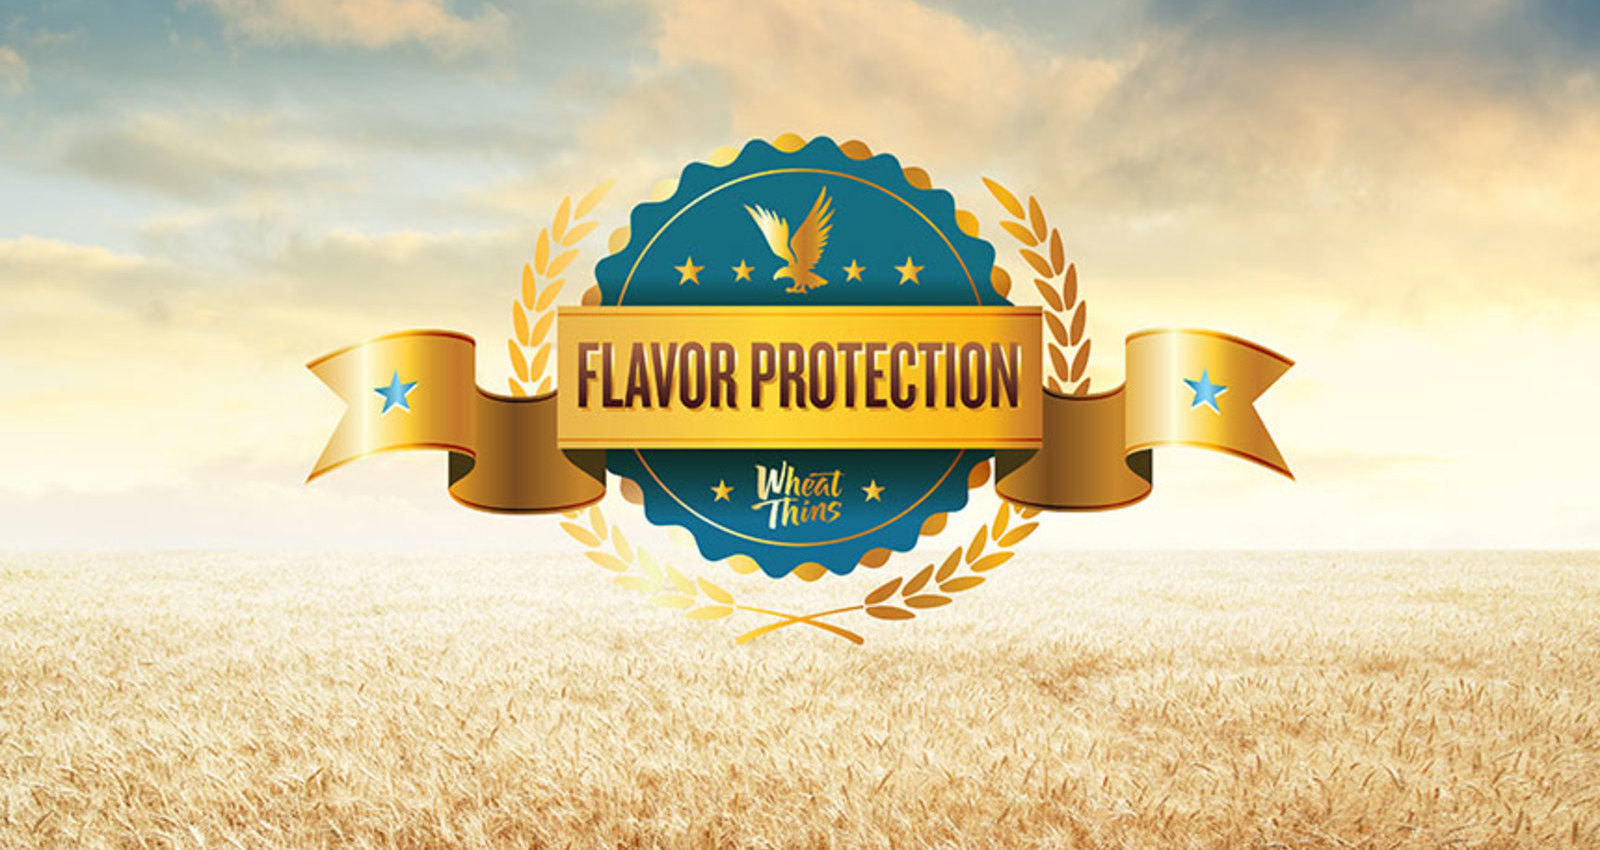 Wheat Thins Flavor Protection Program